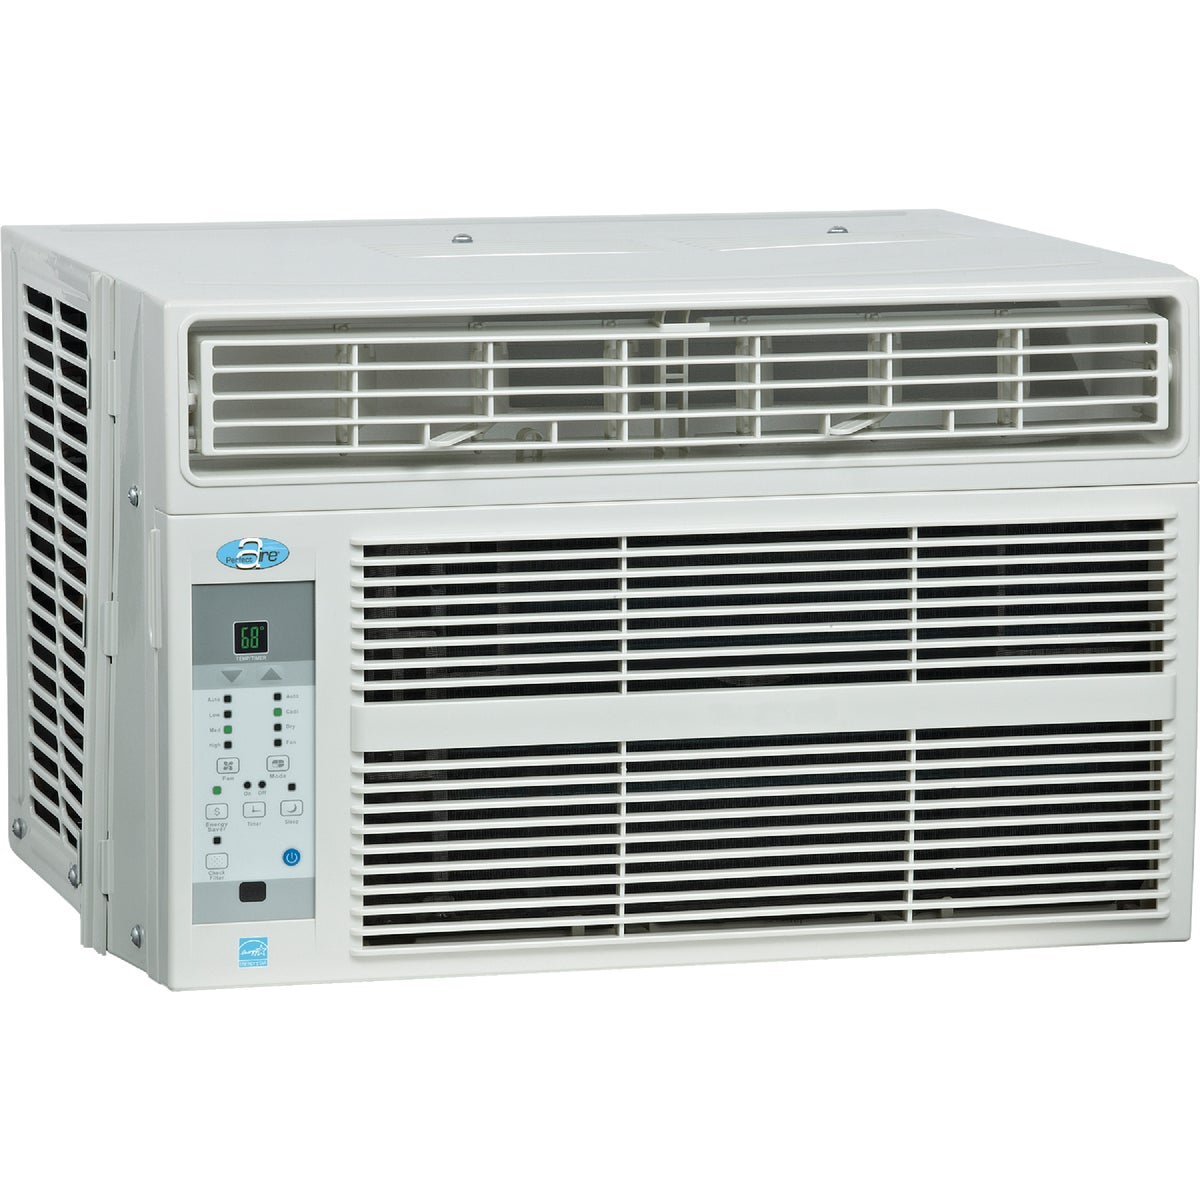 6000BTU AIR CONDITIONER - 2PAC6000 by Perfect Aire